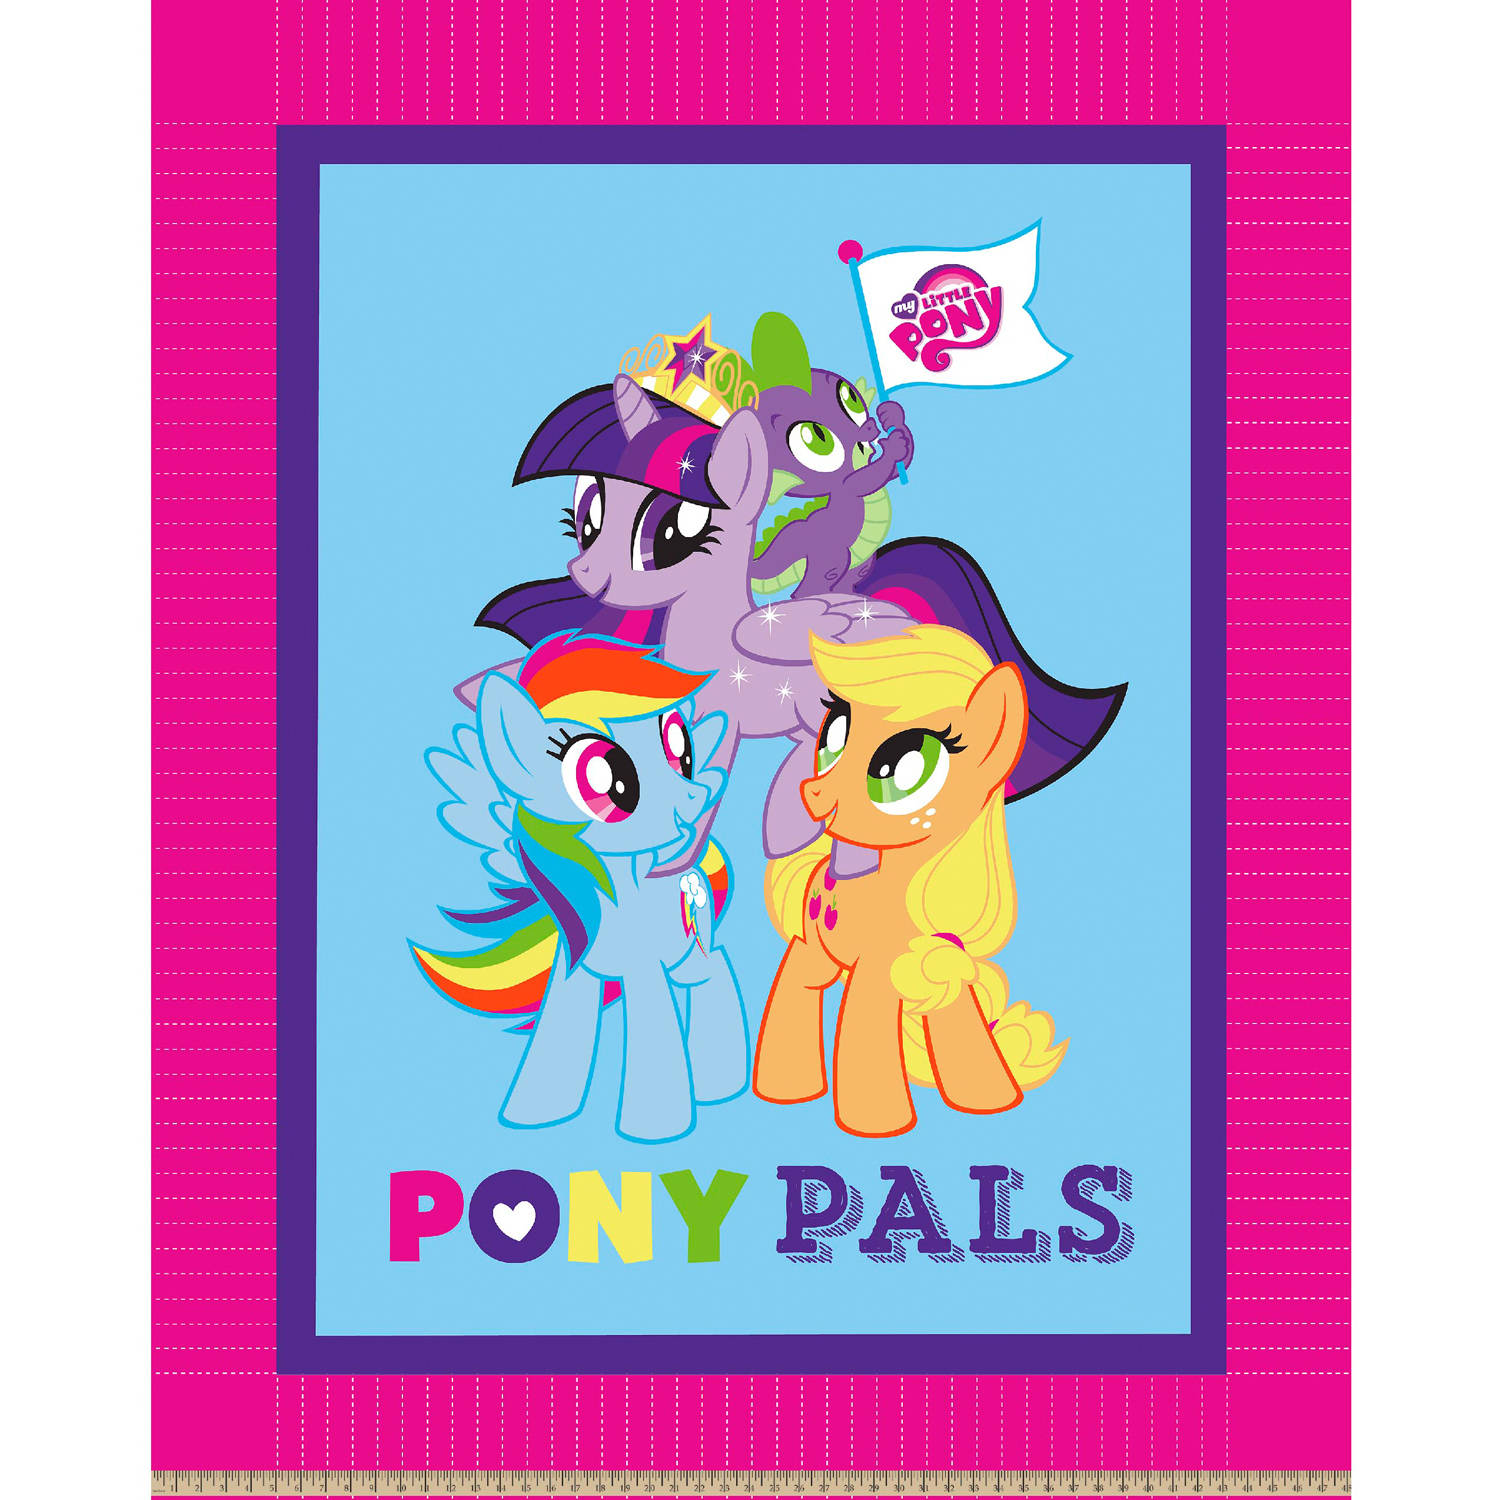 Hasbro Bros My Little Pony Pals No Sew Fleece Throw Kit, Fuschia